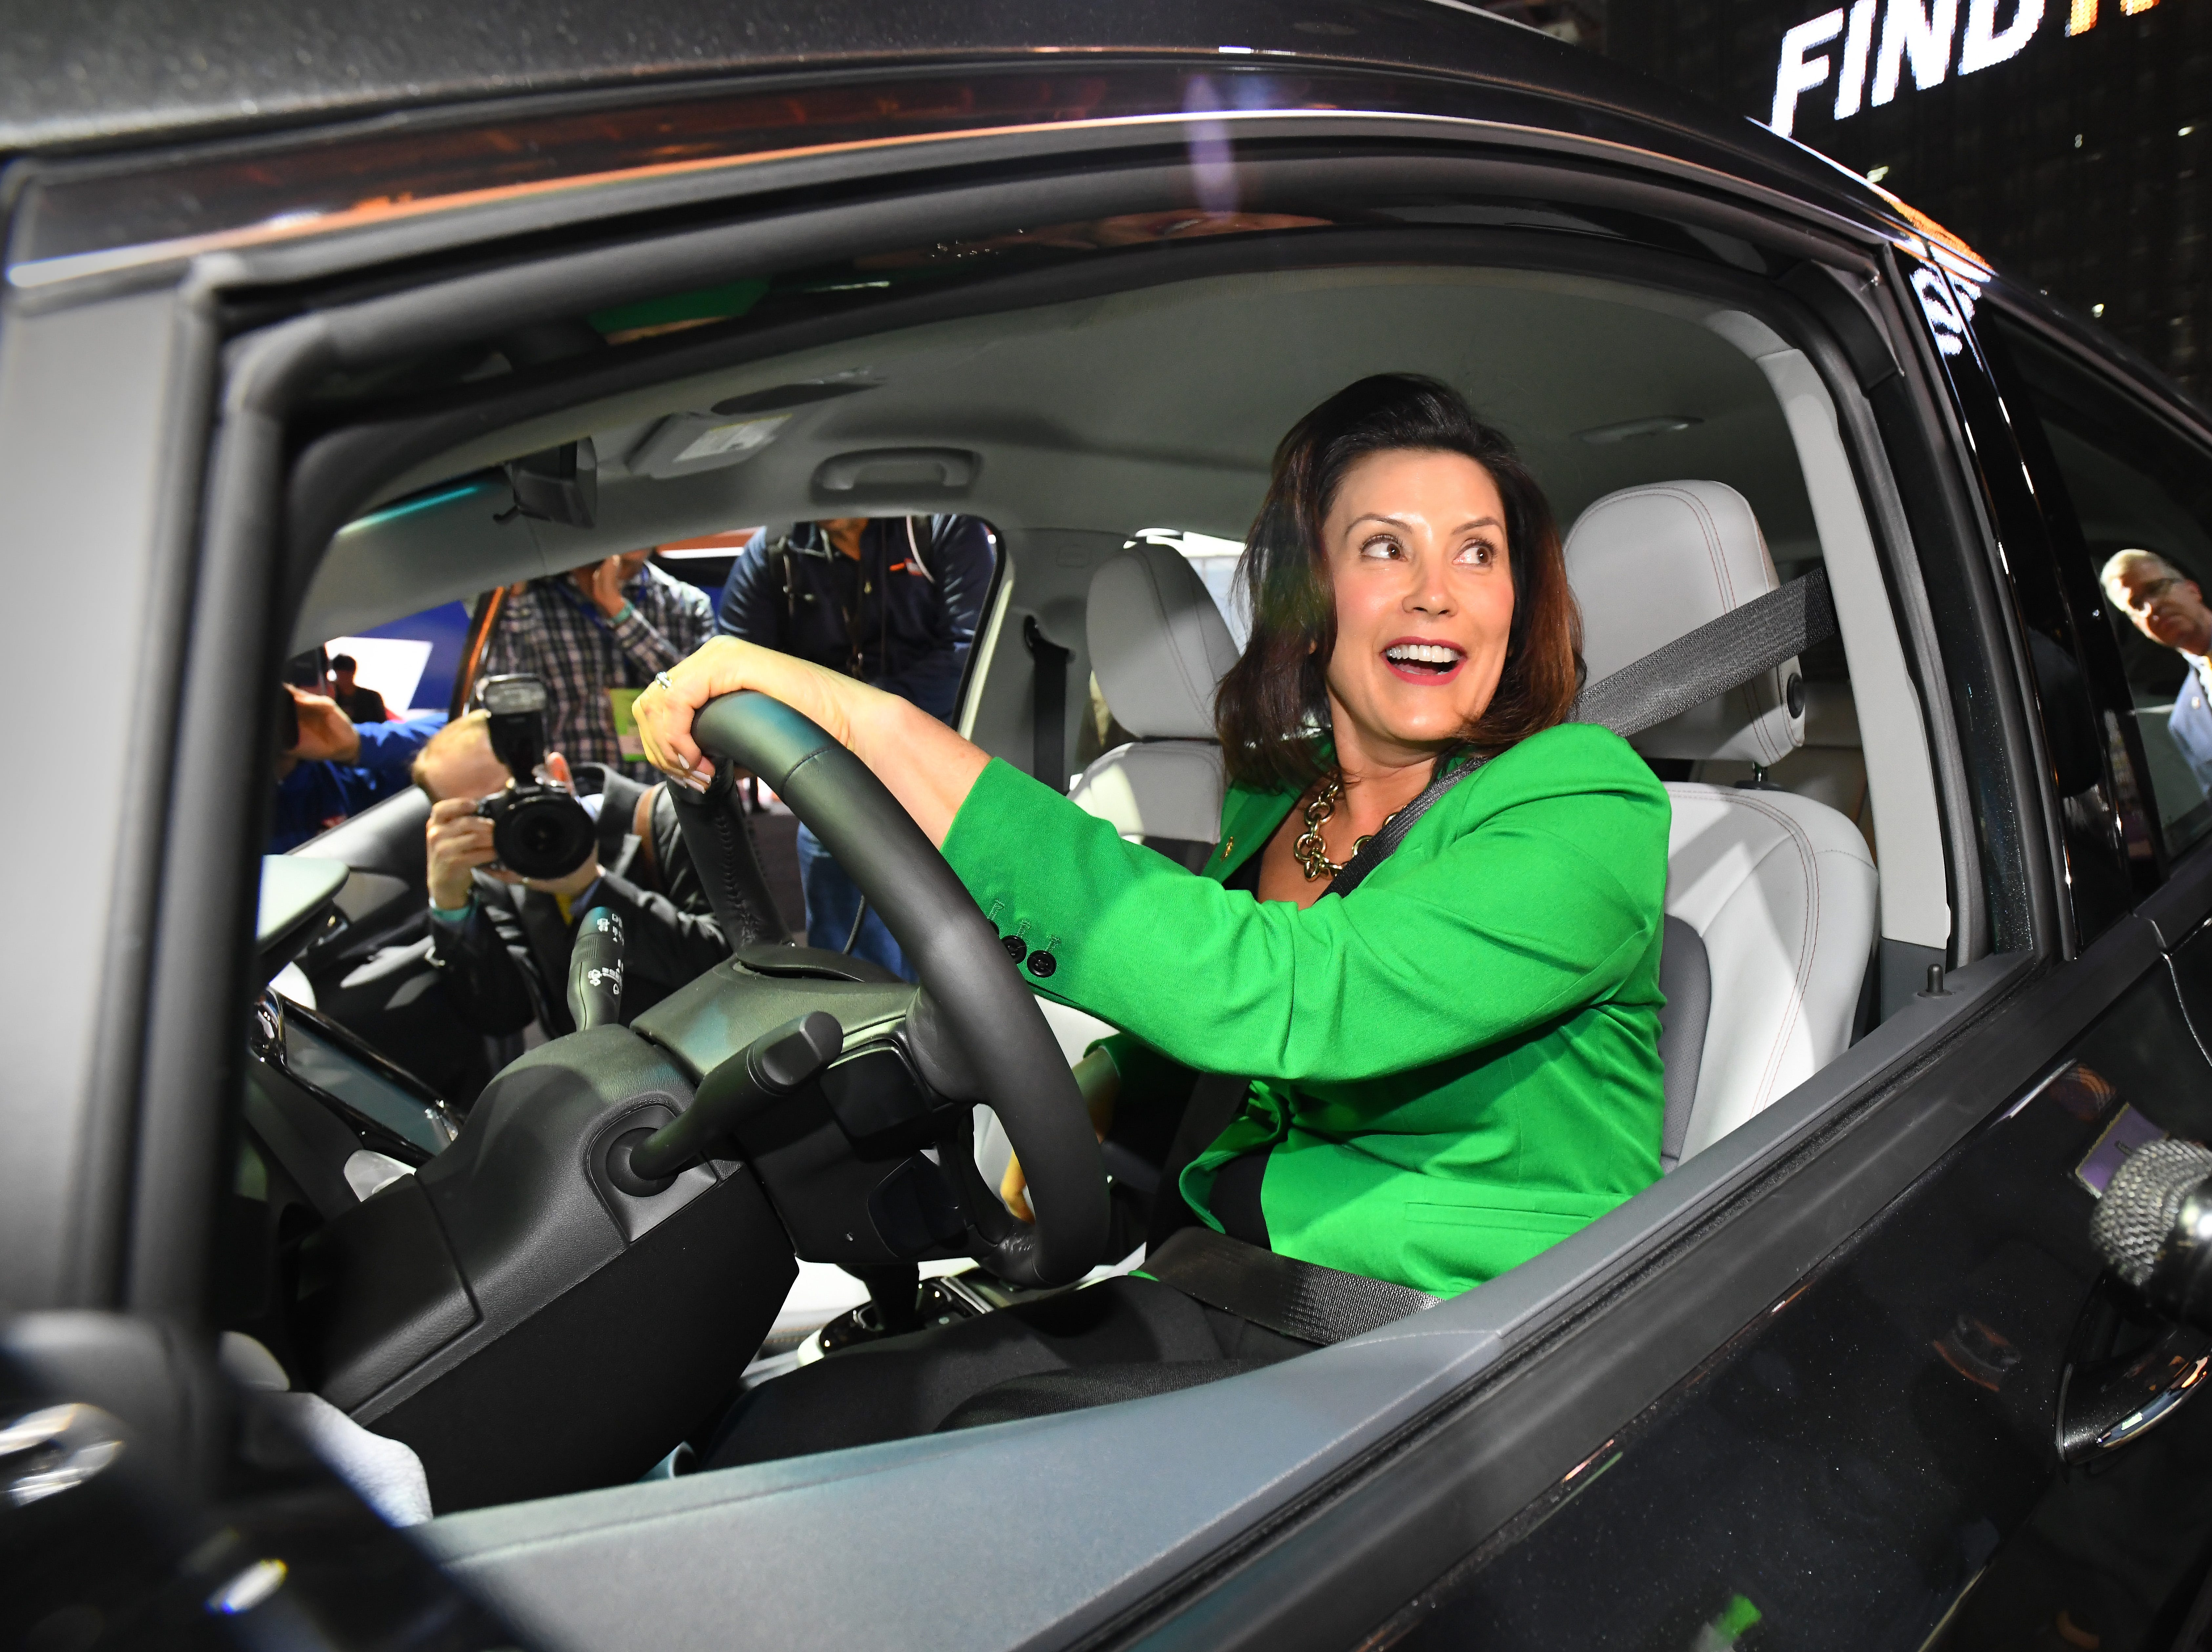 Michigan Governor Gretchen Whitmer gets a feel for the Chevrolet Bolt EV in the General Motors display during a tour of the North American International Auto Show.